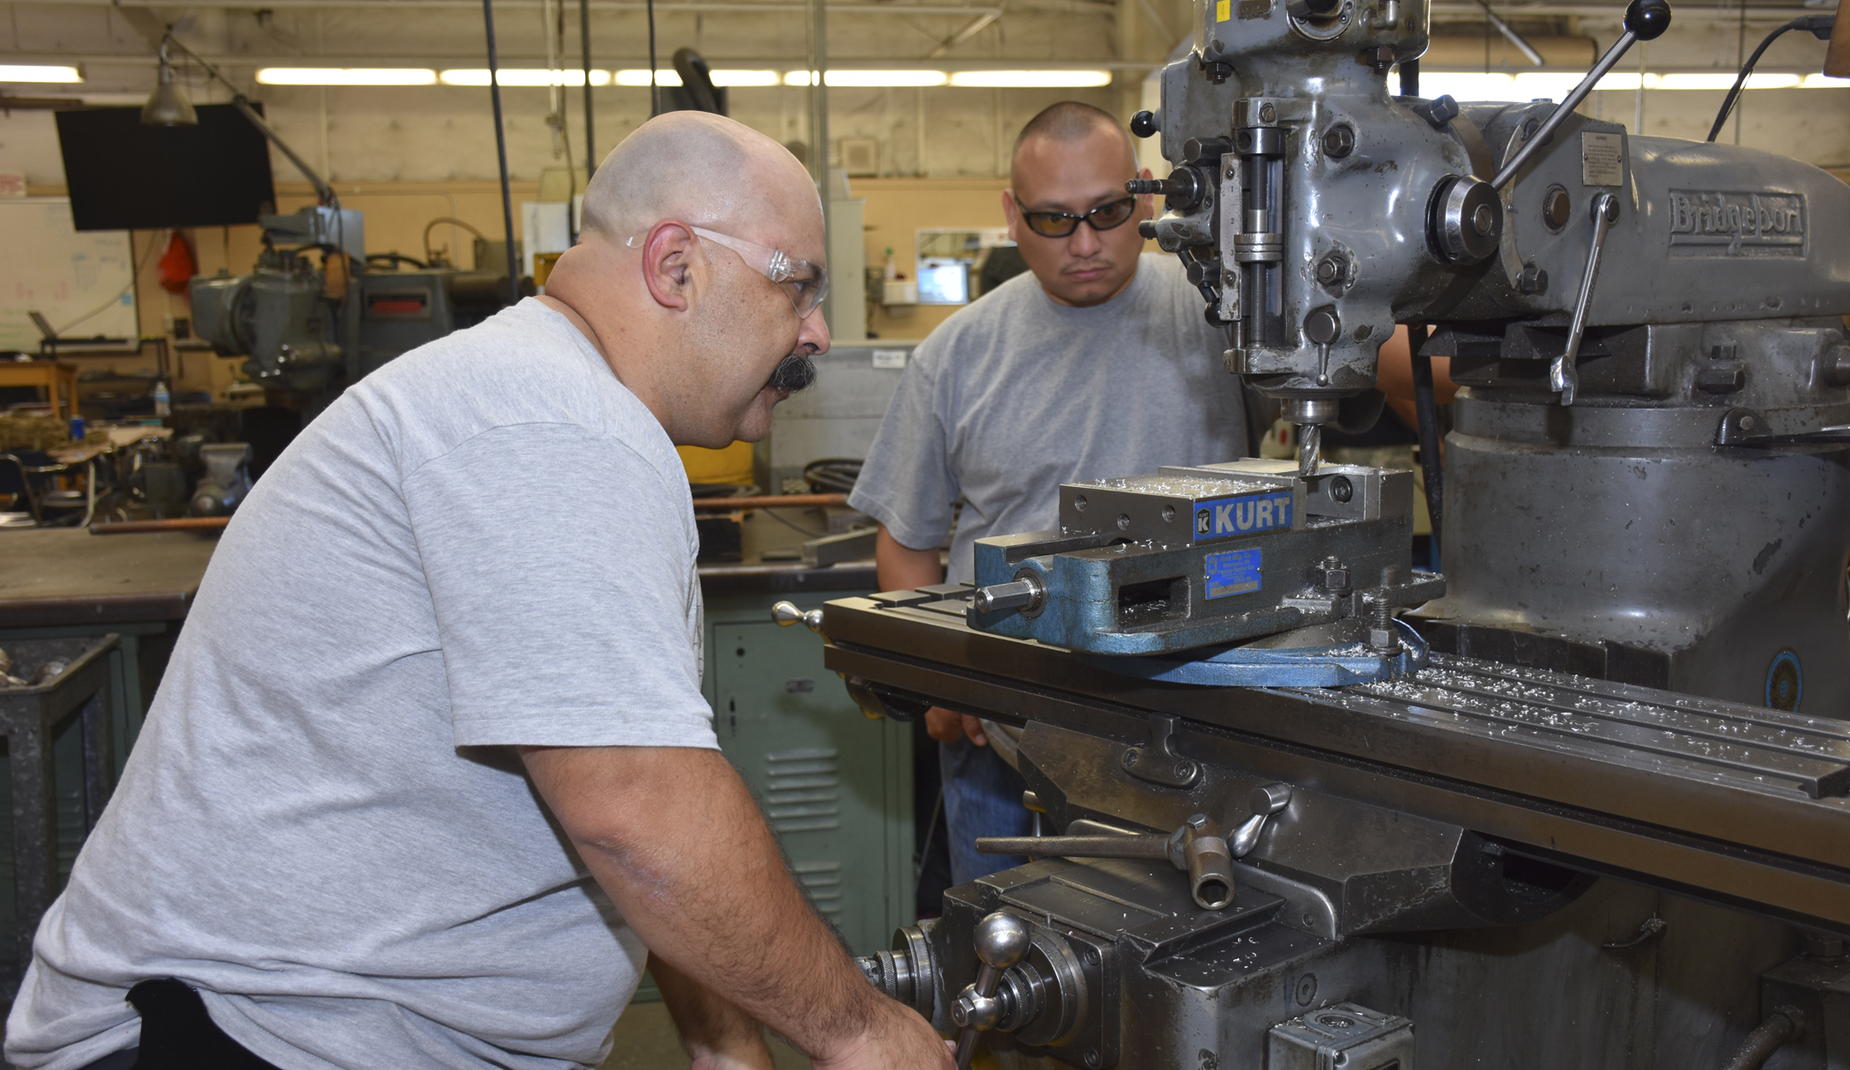 Machinist   Career and Technical Education (CTE)